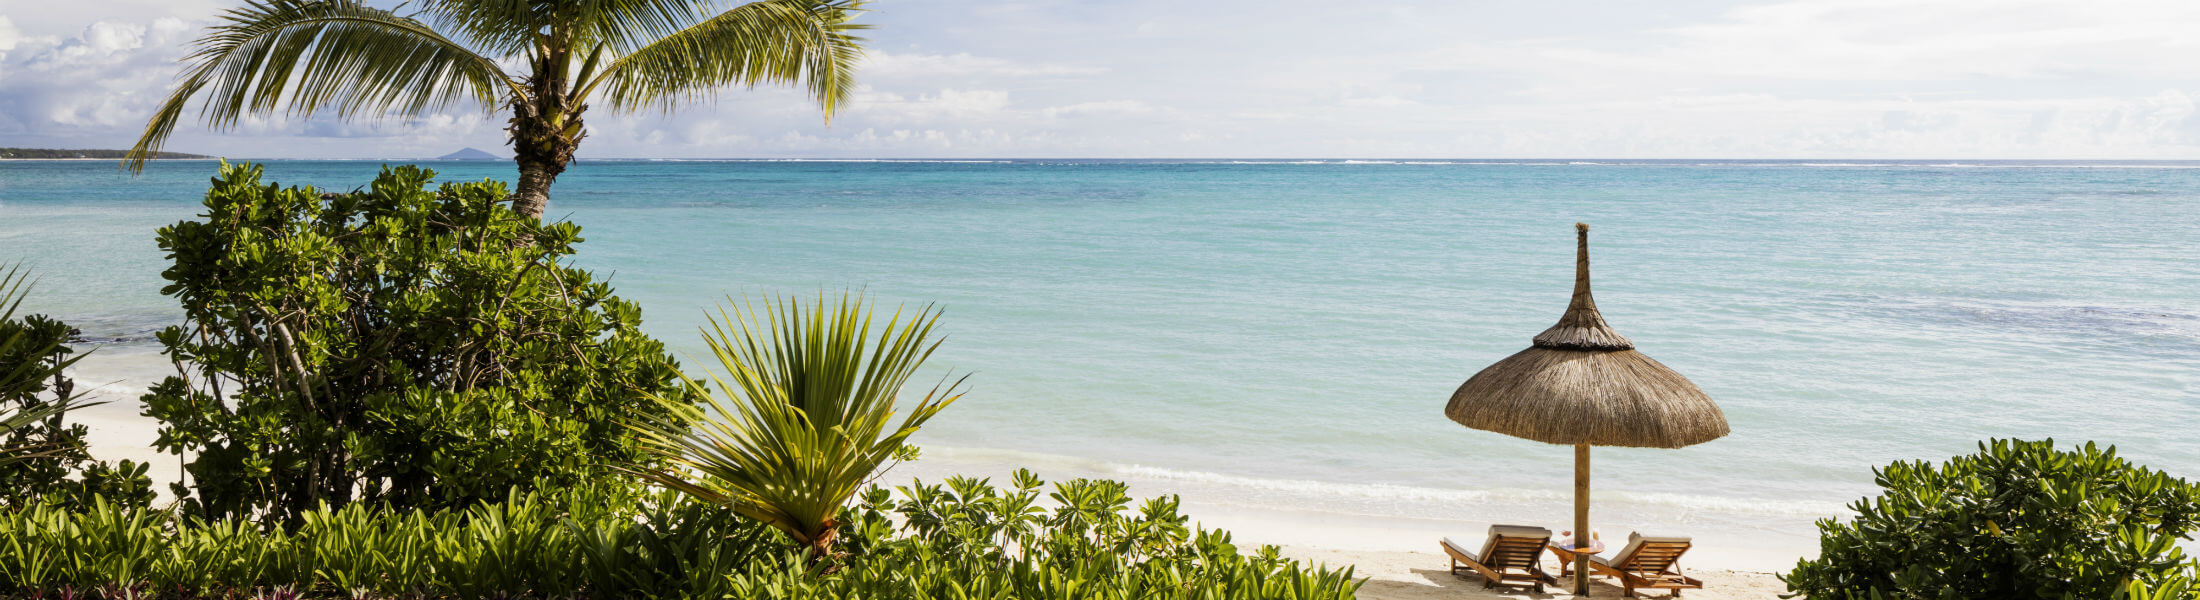 One&Only Le Saint Geran, Mauritius - beach with parasol